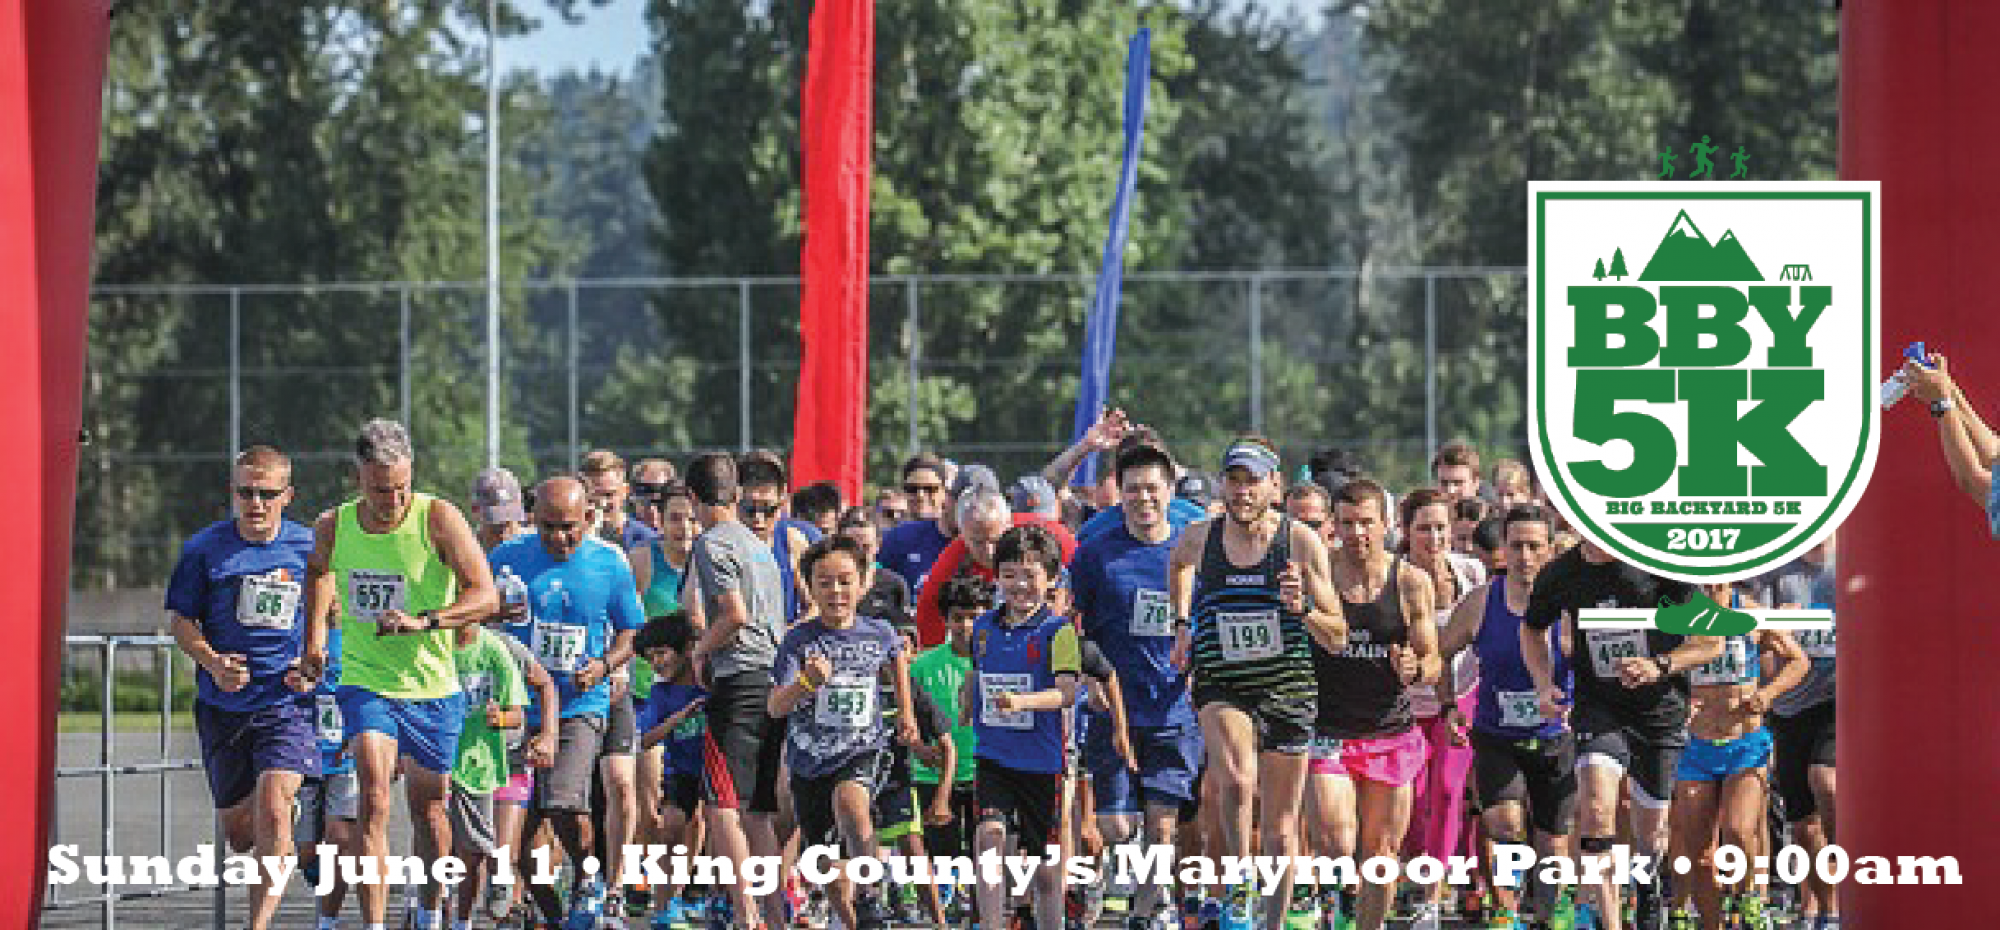 Big Backyard 5K big backyard 5k – june 11, 2017 • king county's marymoor park